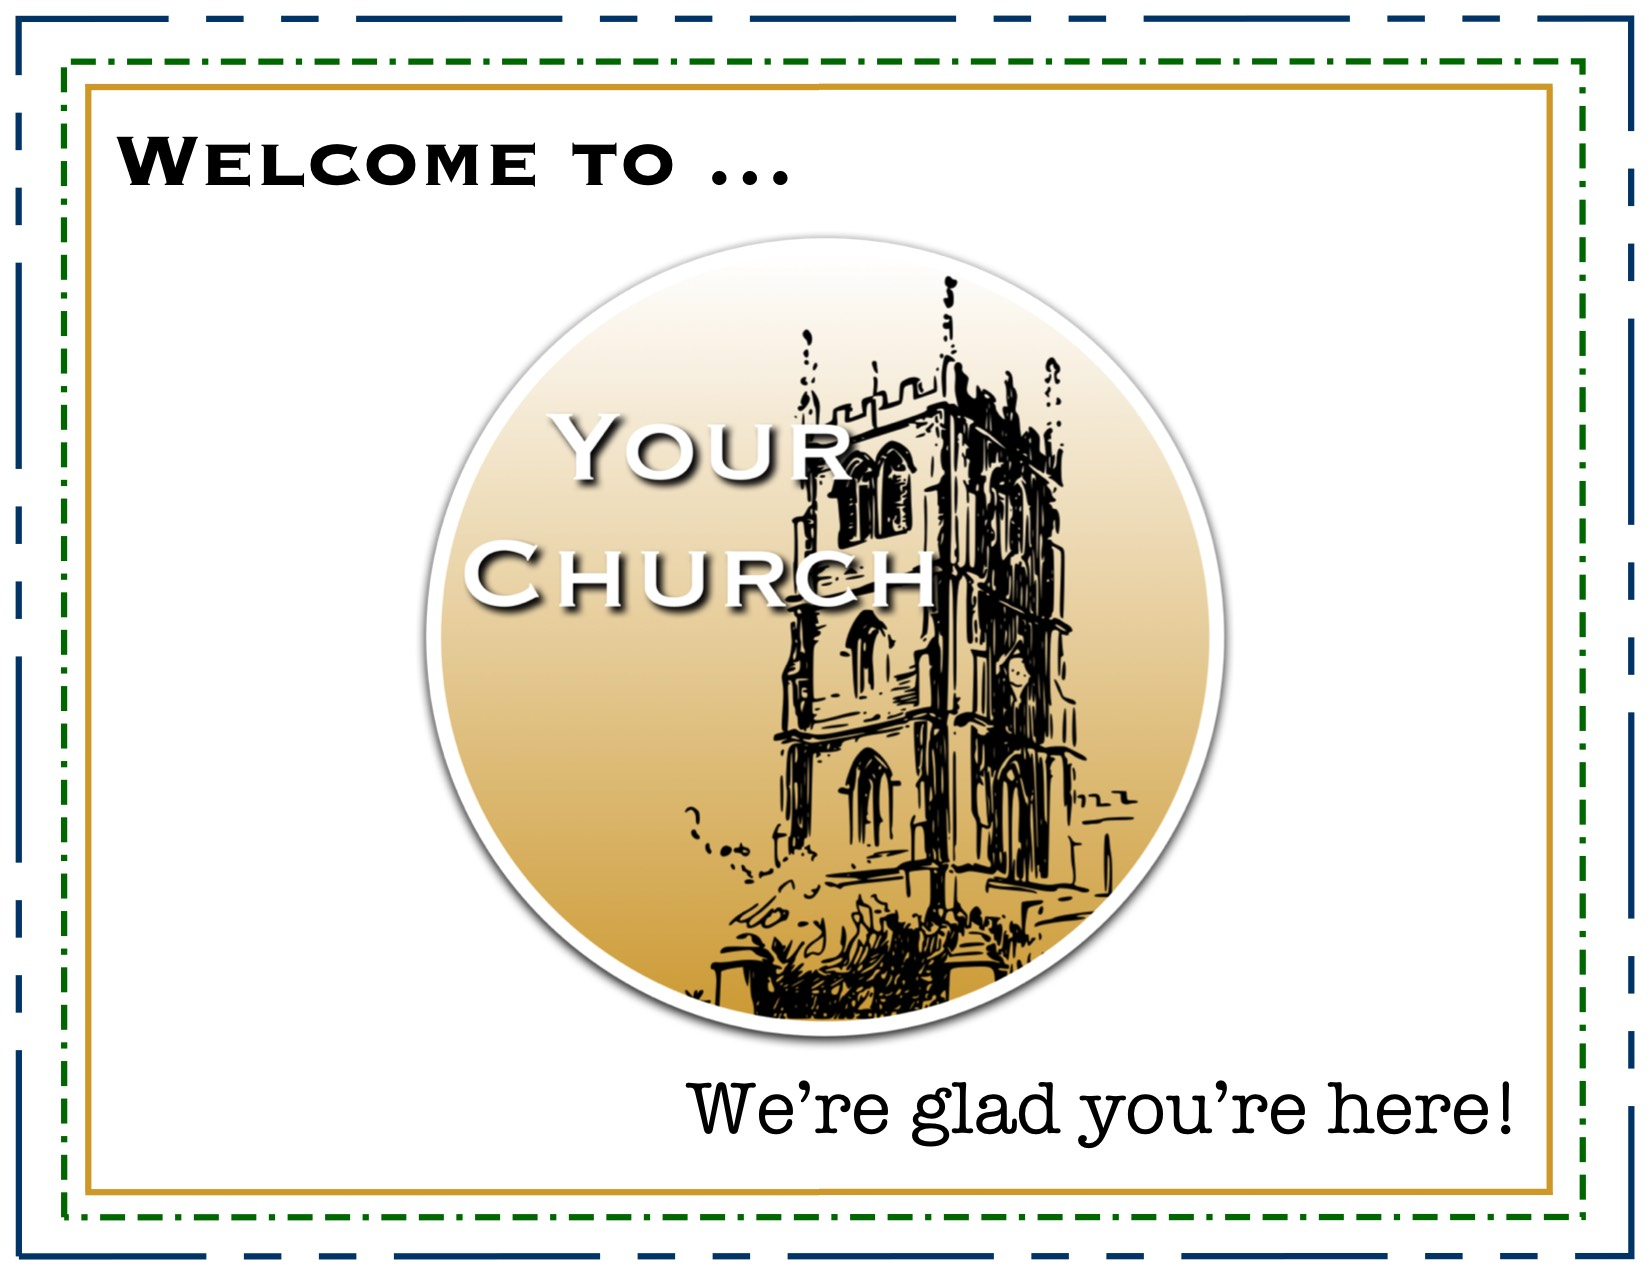 Welcome to YourChurch